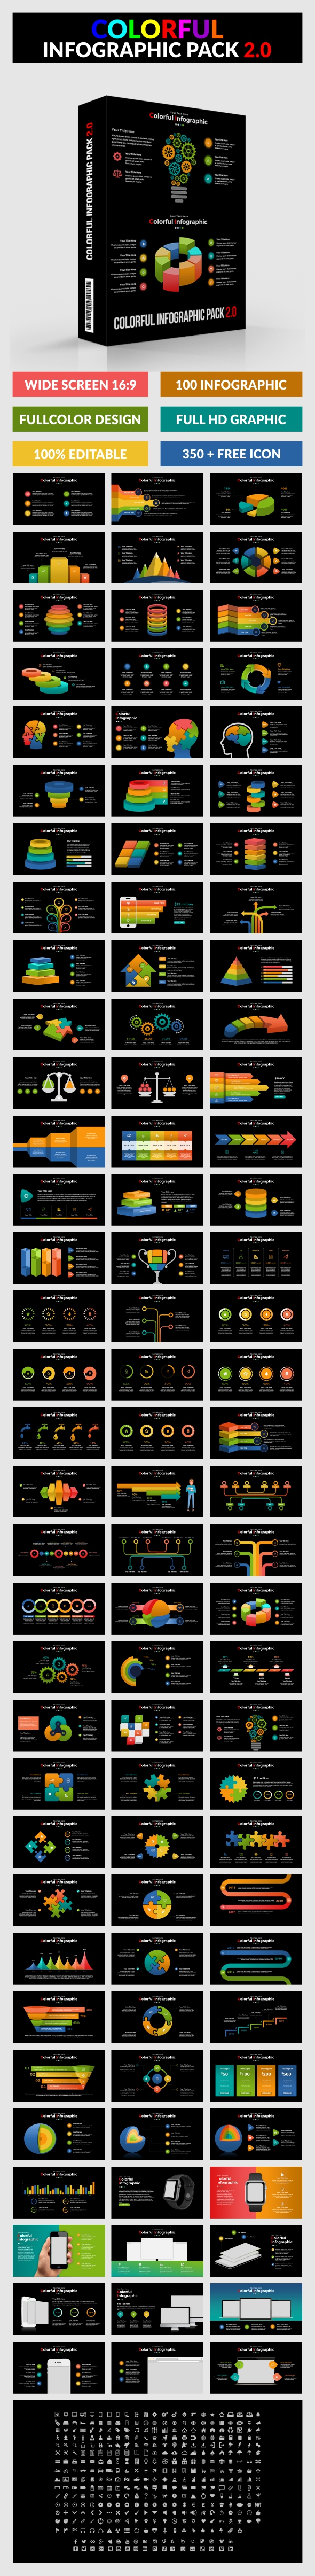 Colorful Infographic Pack 2.0 - Keynote - Keynote Templates Presentation Templates